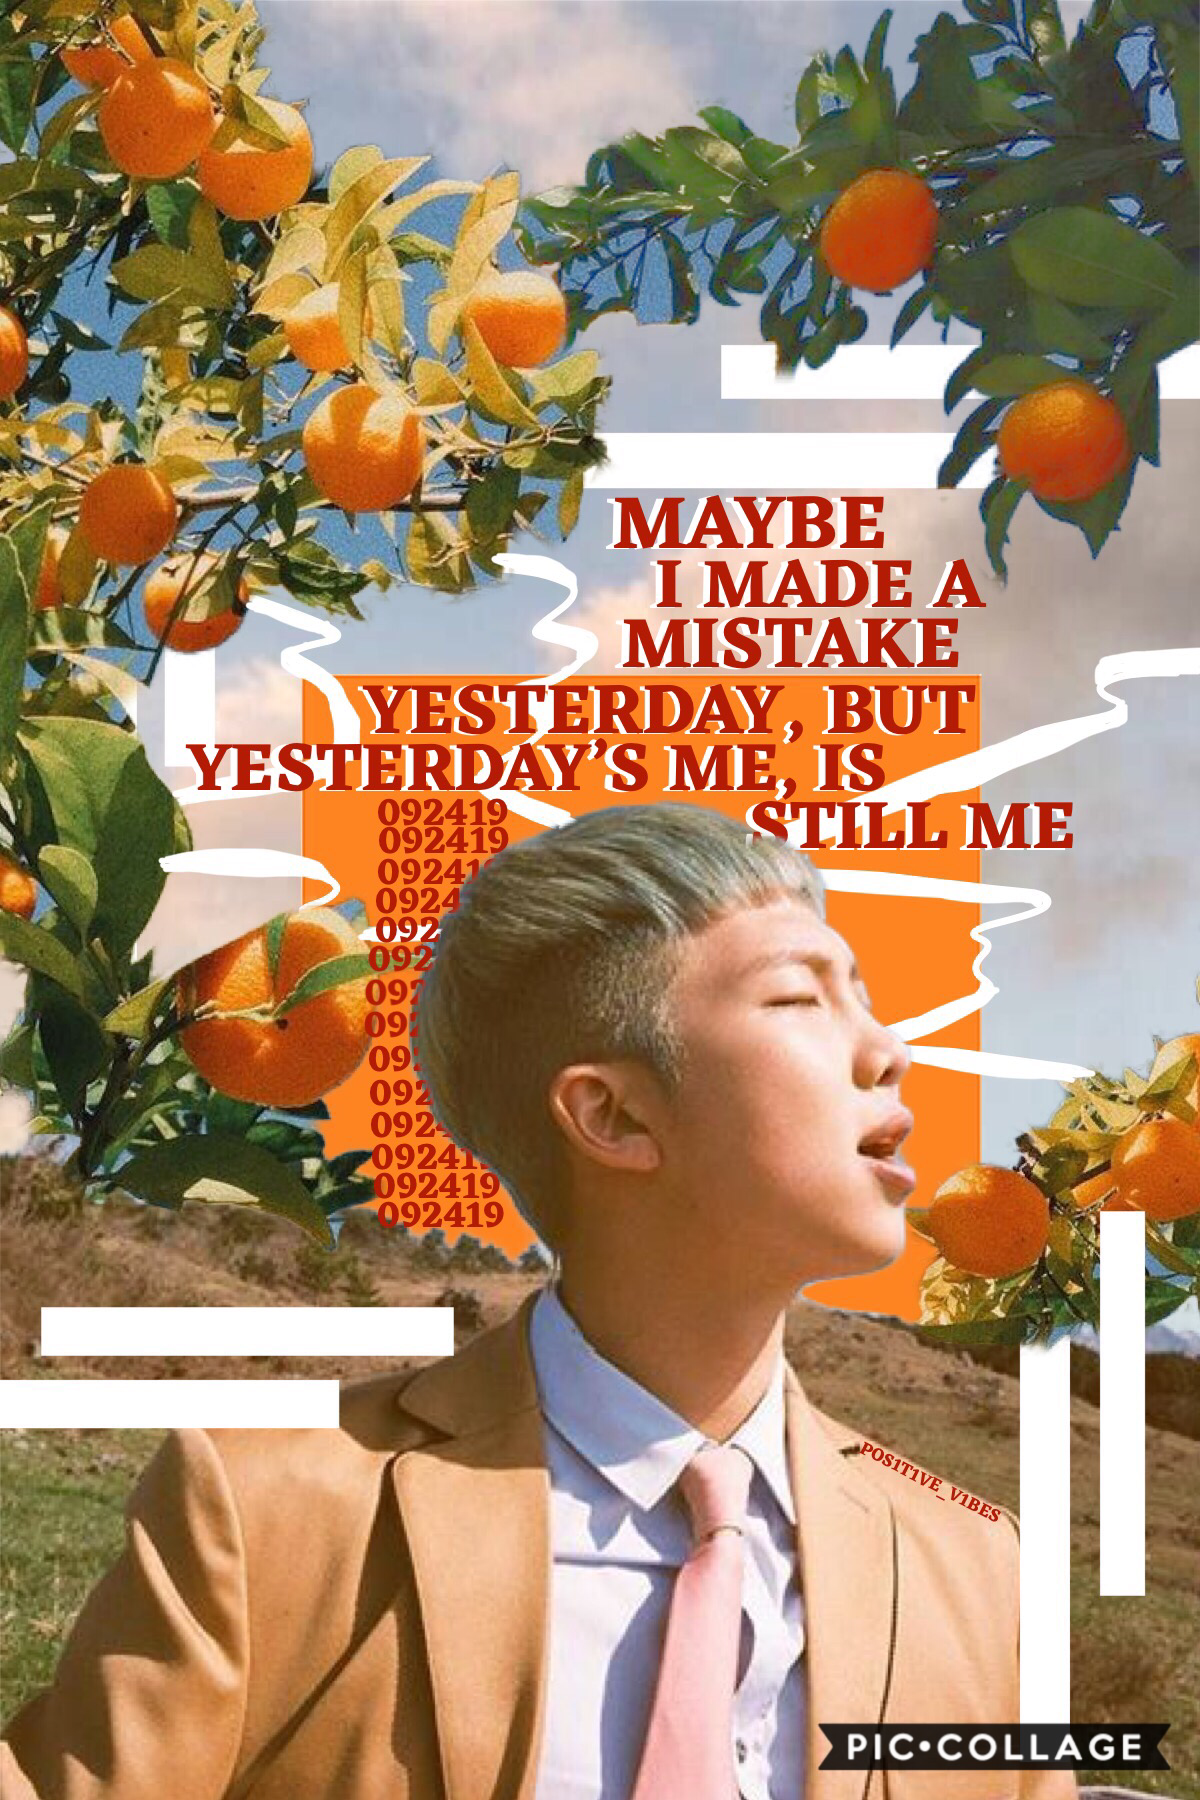 🍊update in remixes !🍊a collage that I actually like a lot for once :)🍊i've been journaling a lot recently & i've actually started a routine during quarantine 😳 🍊life's been alright, what about you guys? 🍊also, got into new music & bands so that's chill :)